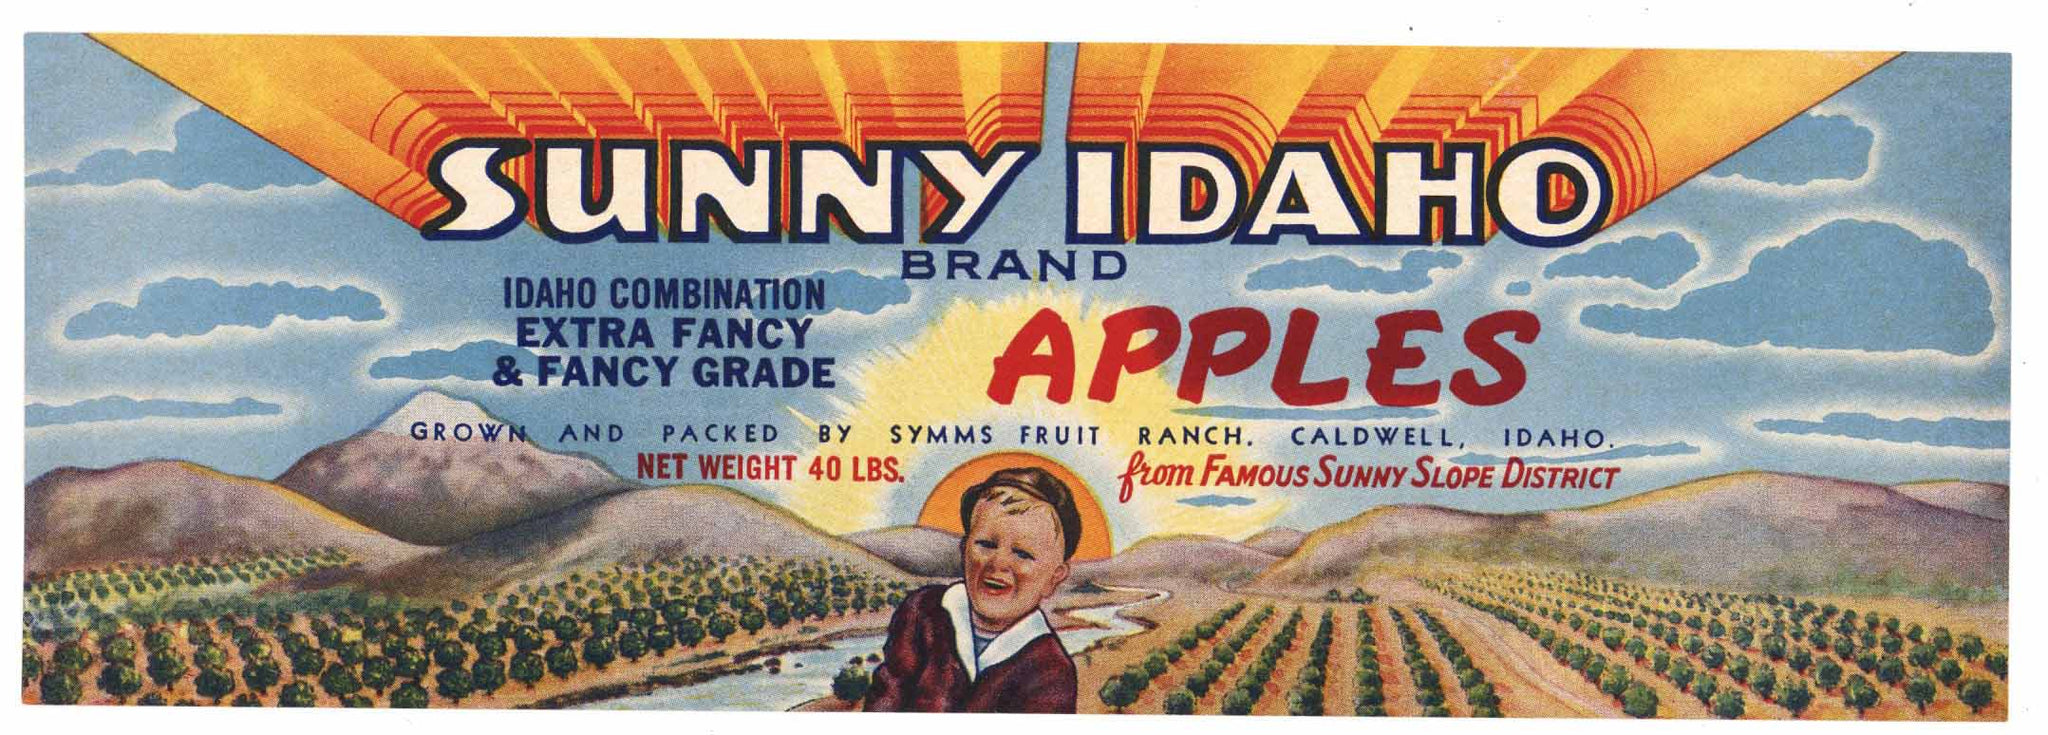 Sunny Idaho Brand Vintage Caldwell Apple Crate Label